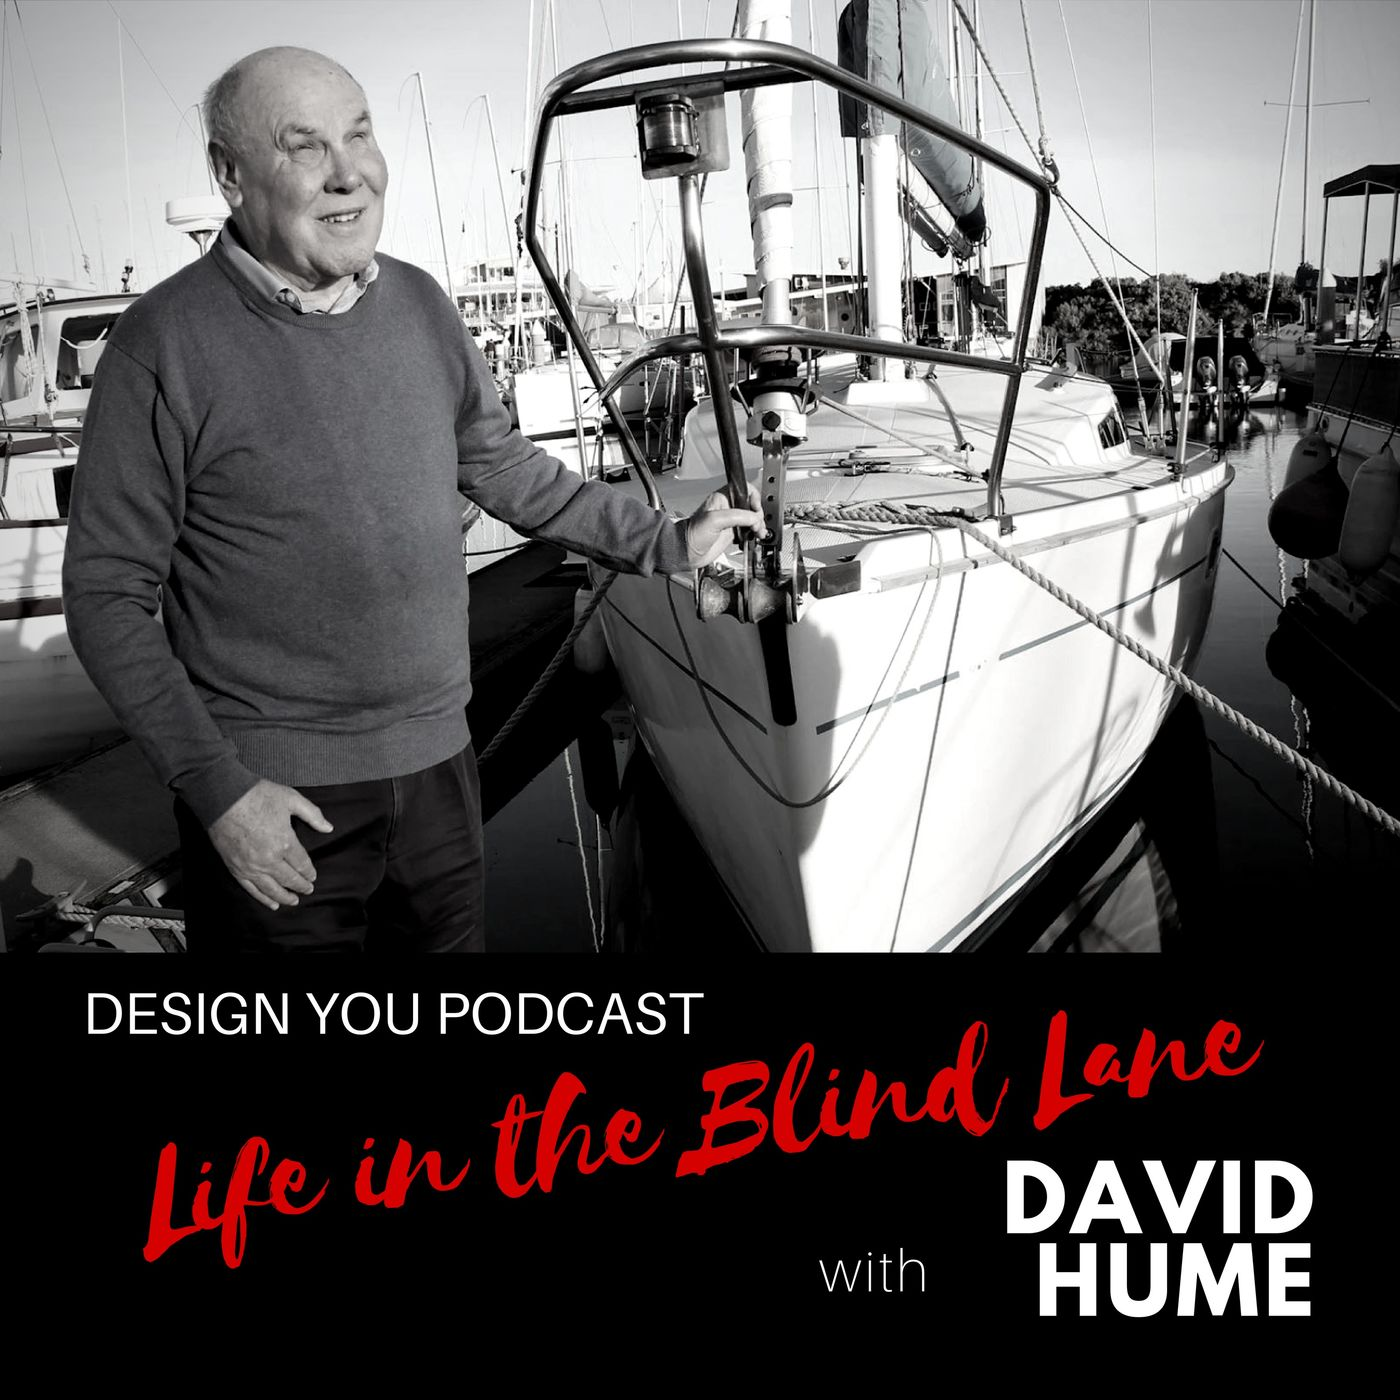 EP 038 – Life in the Blind Lane with David Hume